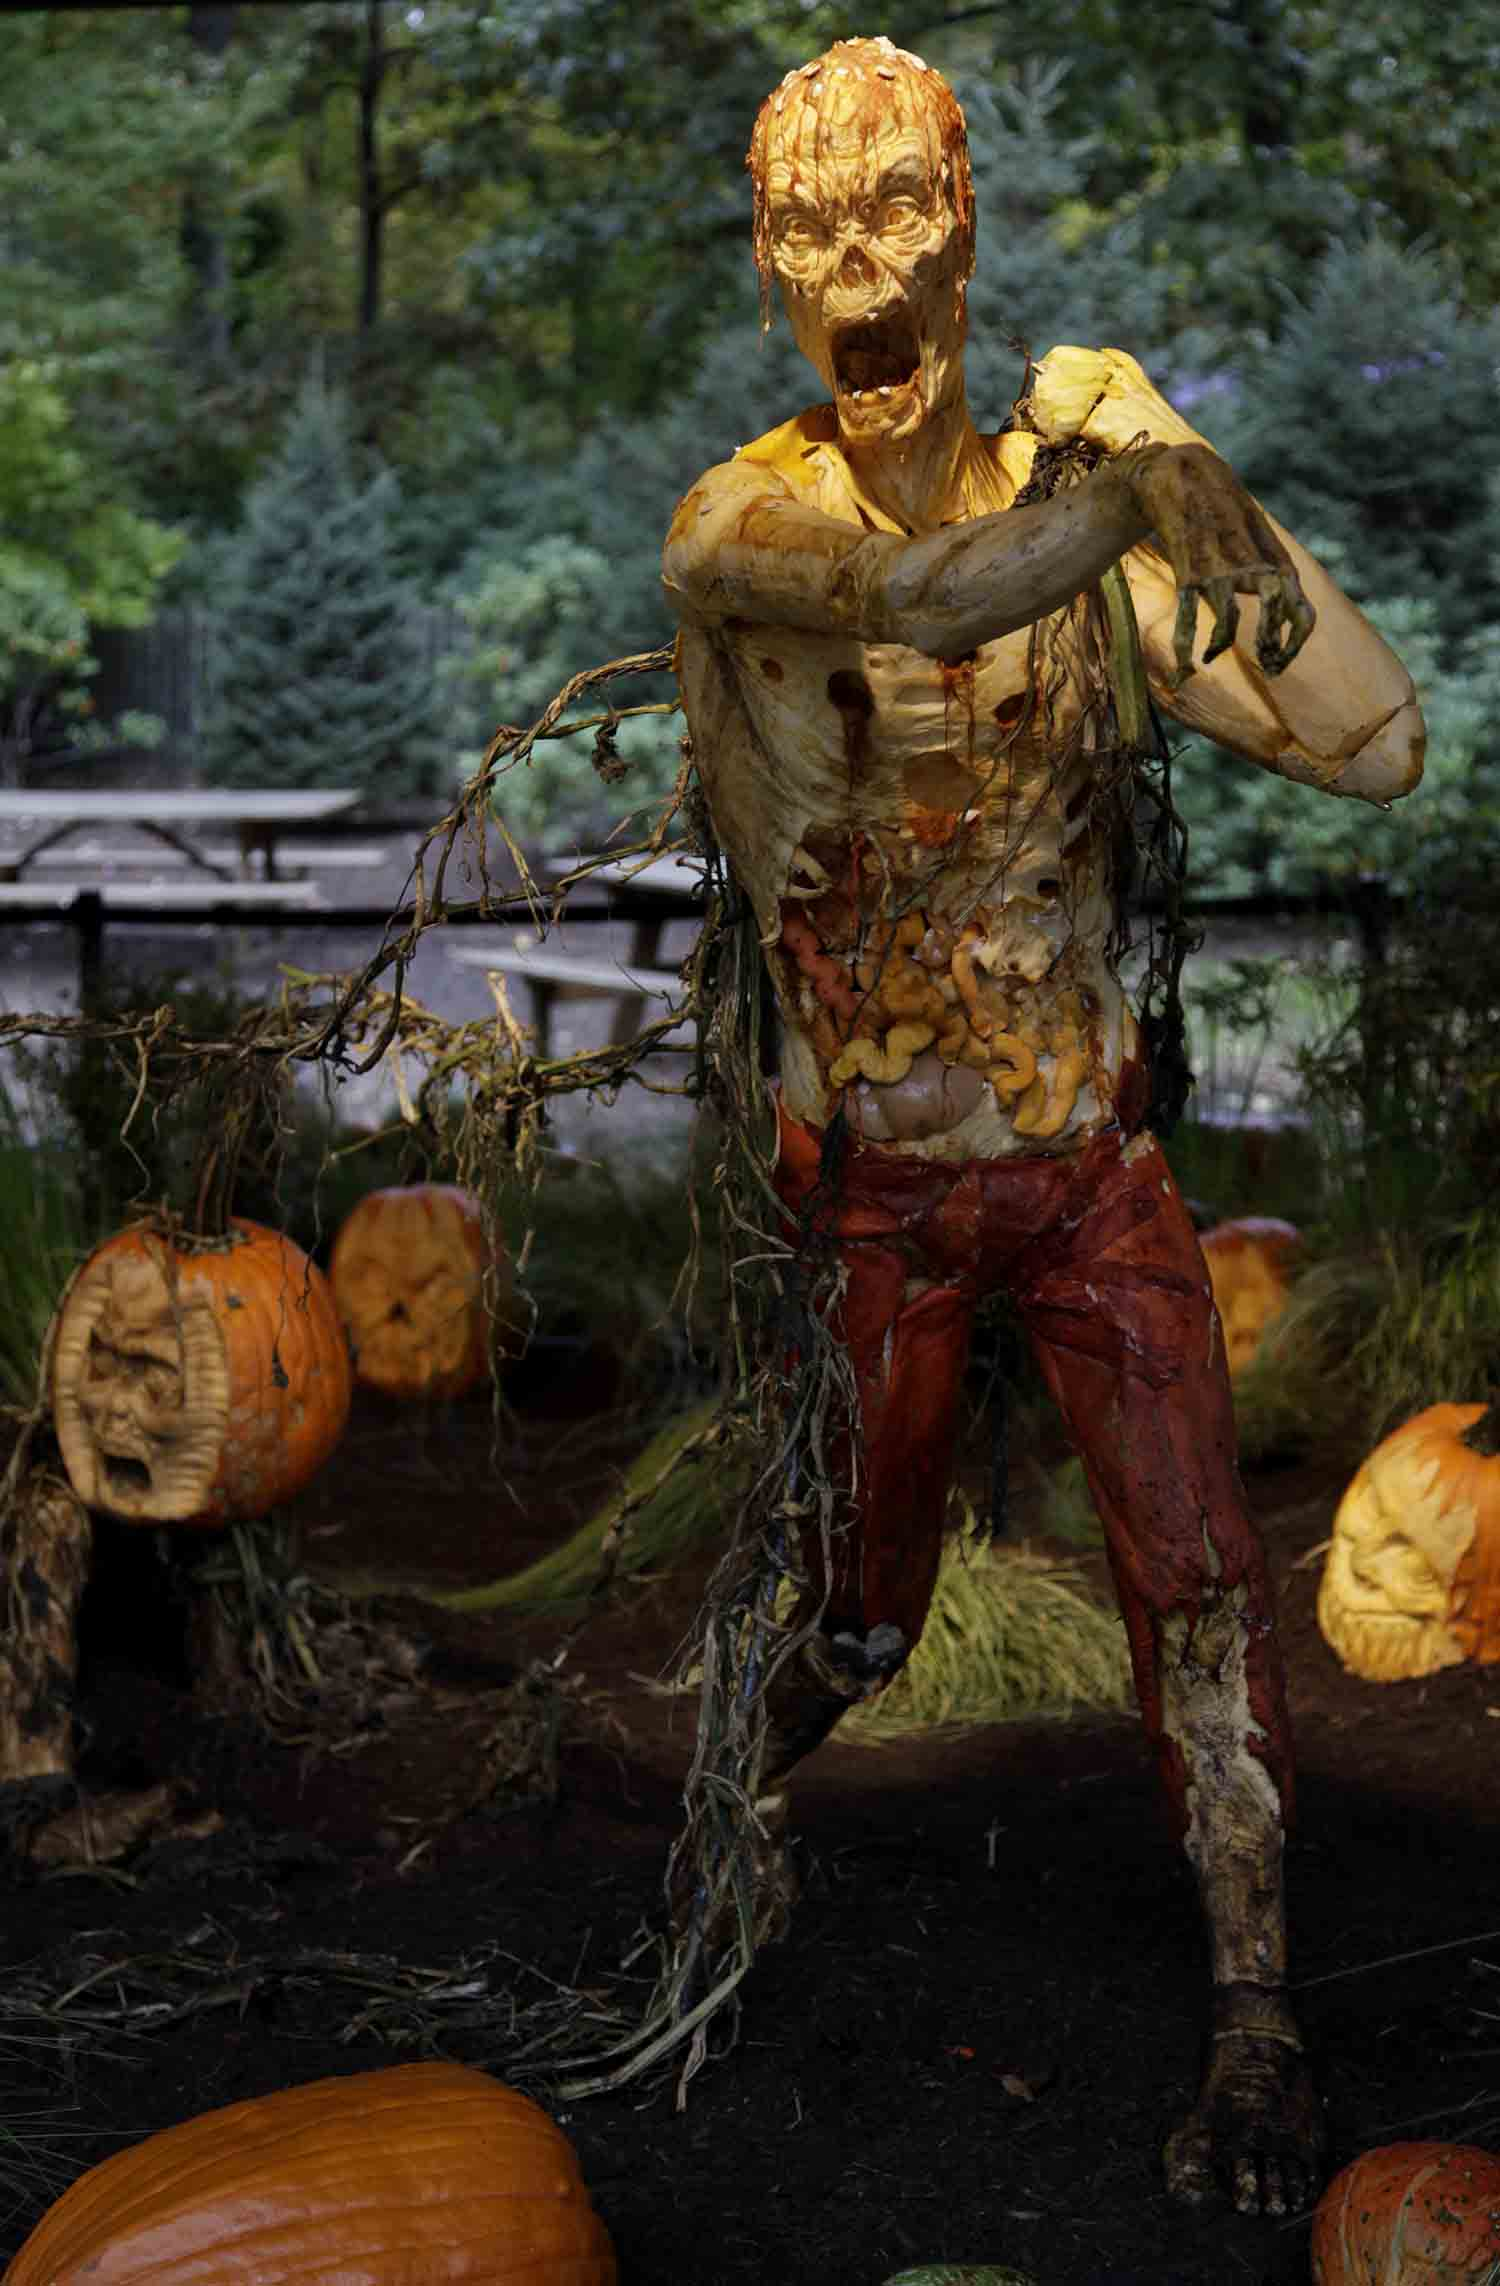 A zombie carved from giant pumpkins is displayed with other pumpkins at the New York Botanical Gardens in New York, Tuesday, Oct. 23, 2012. The pumpkins will be on display through Oct. 31, 2012.